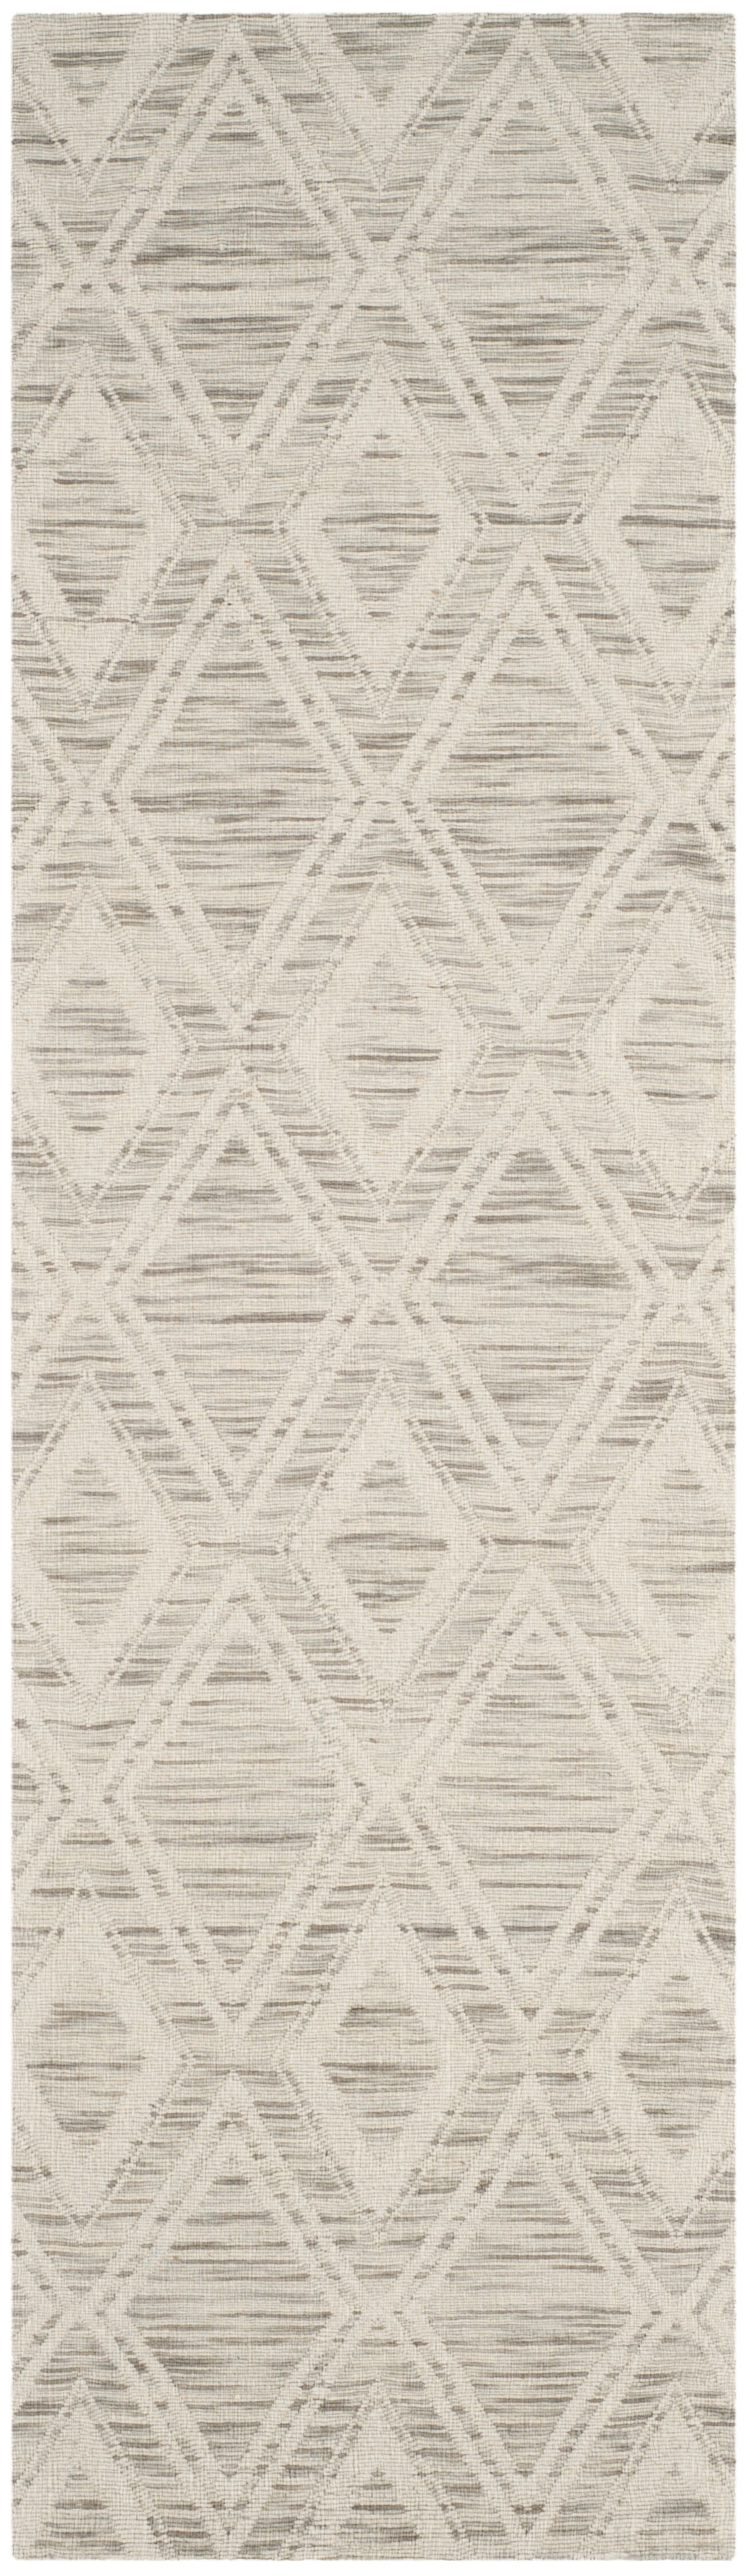 Alexandria Hand-Woven Light Brown/Ivory Area Rug Rug Size: Runner 2'3